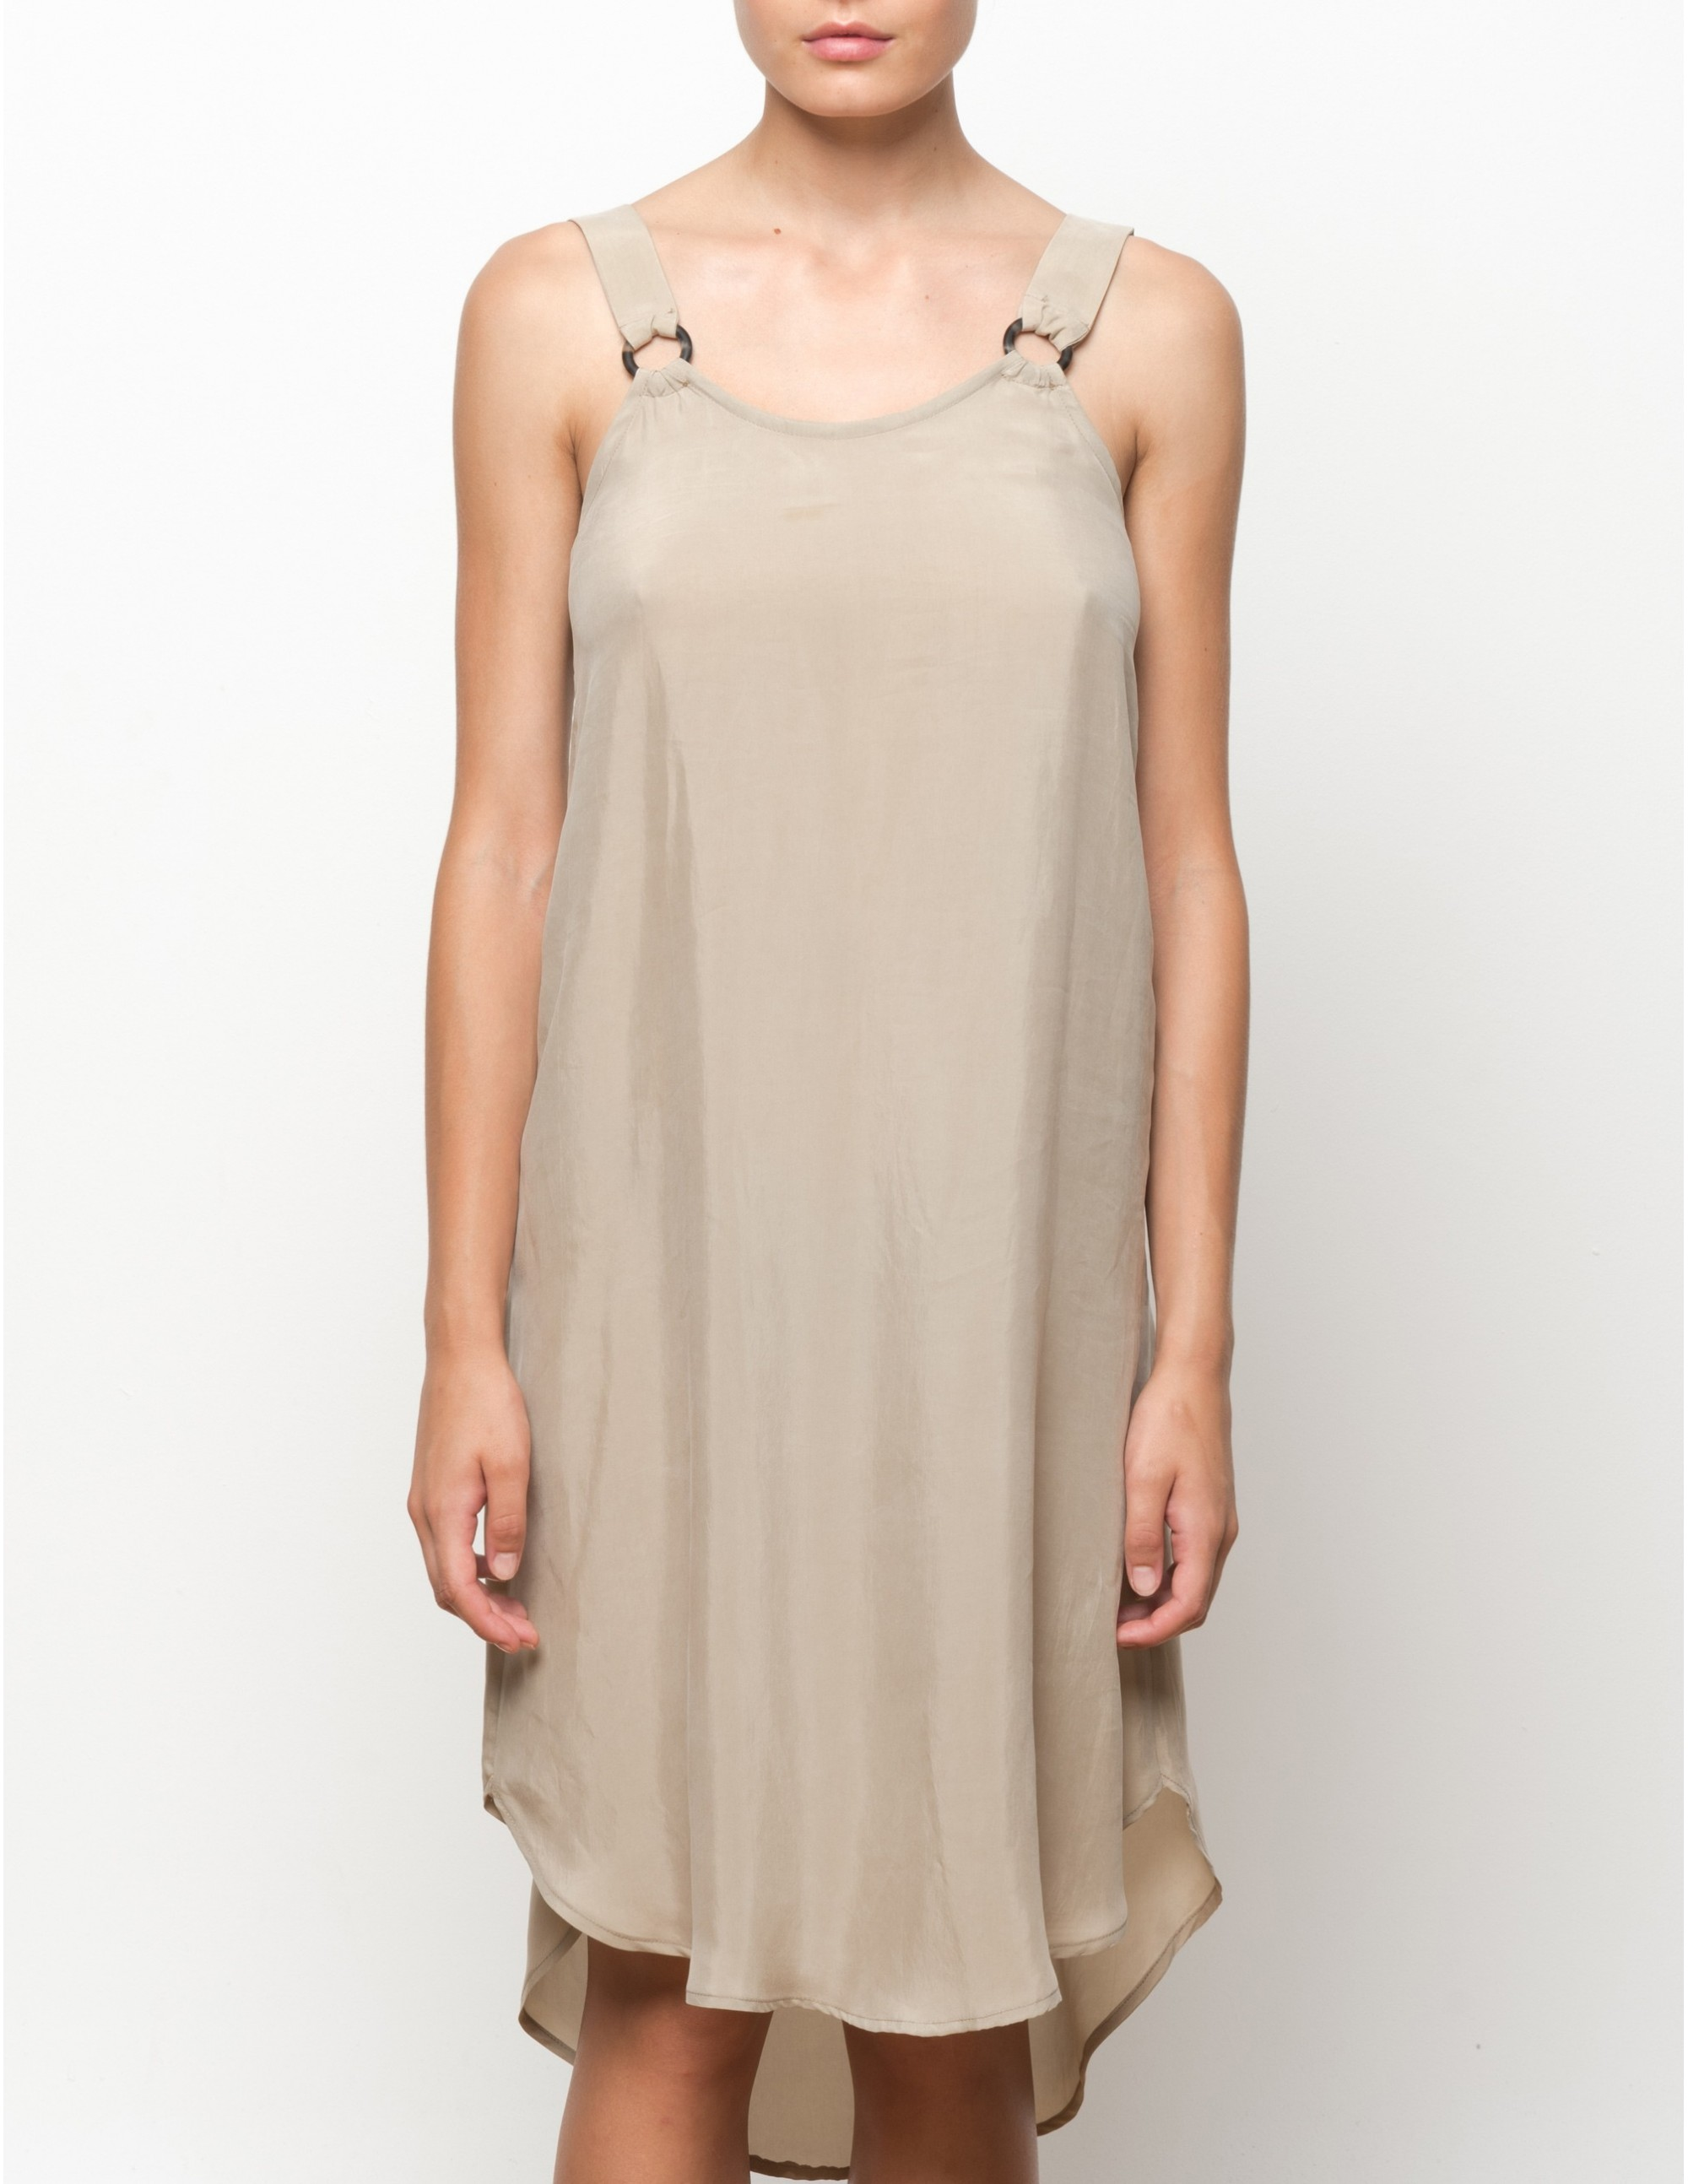 VUMA dress - TANNED